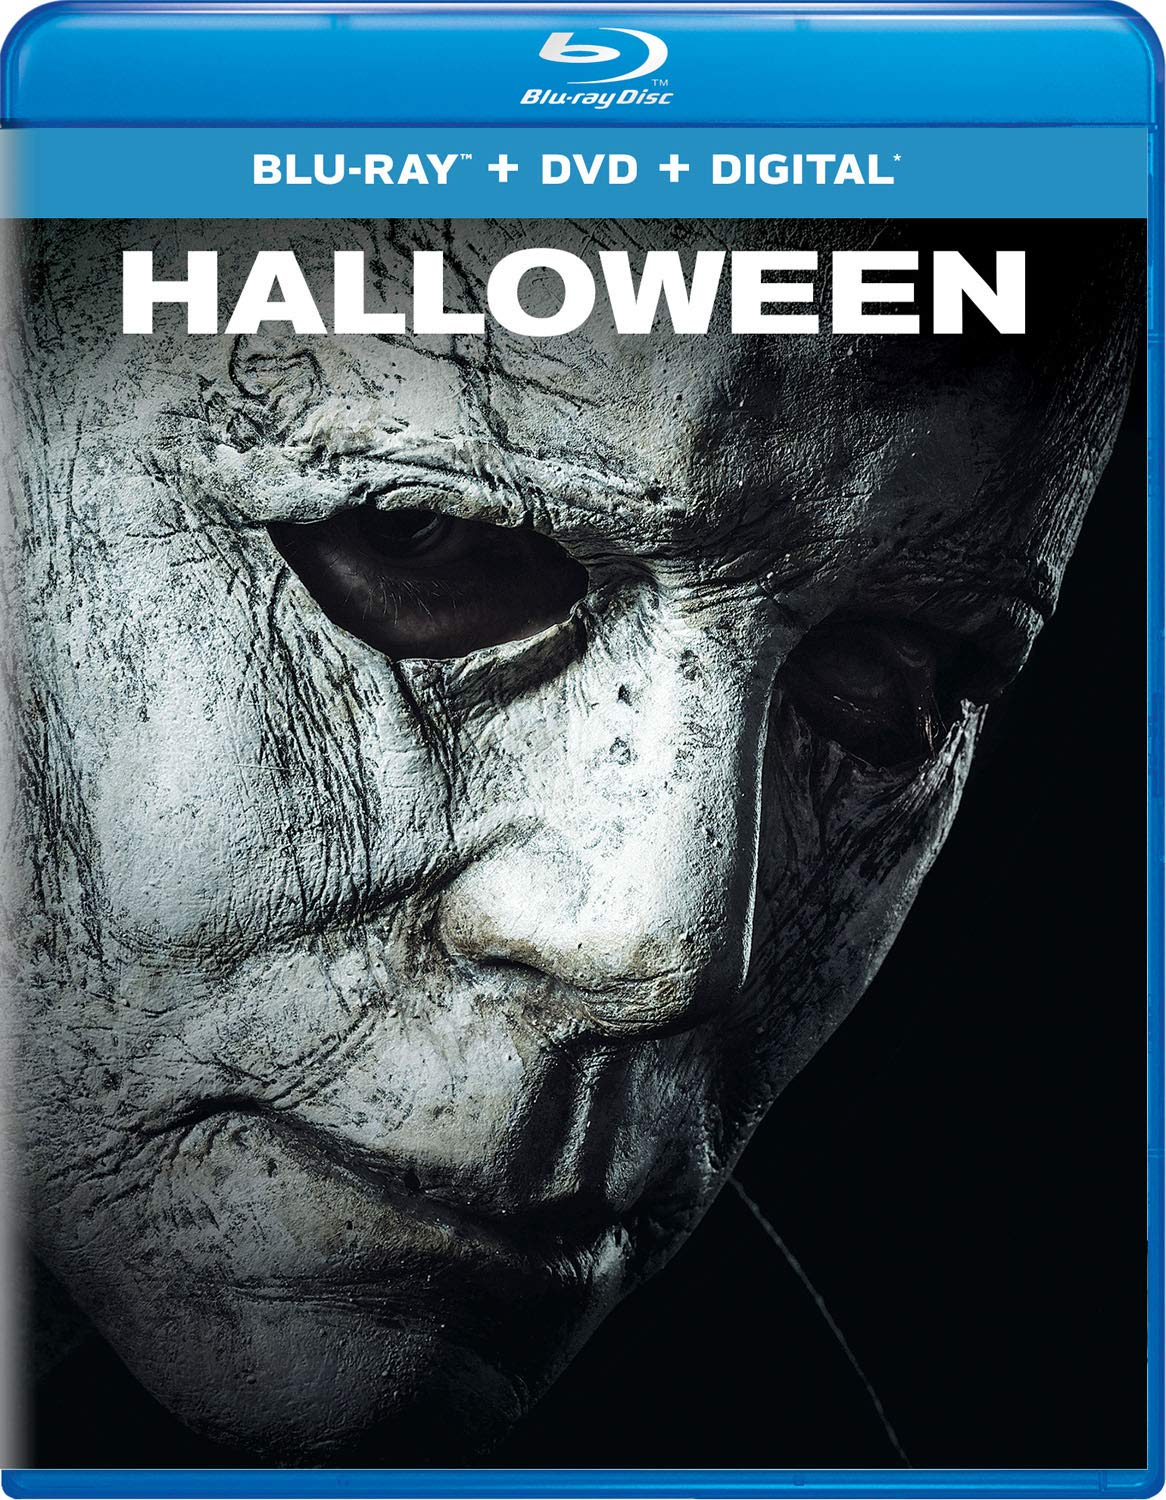 Blu-ray : Halloween (With DVD, Digital Copy, 2 Pack)